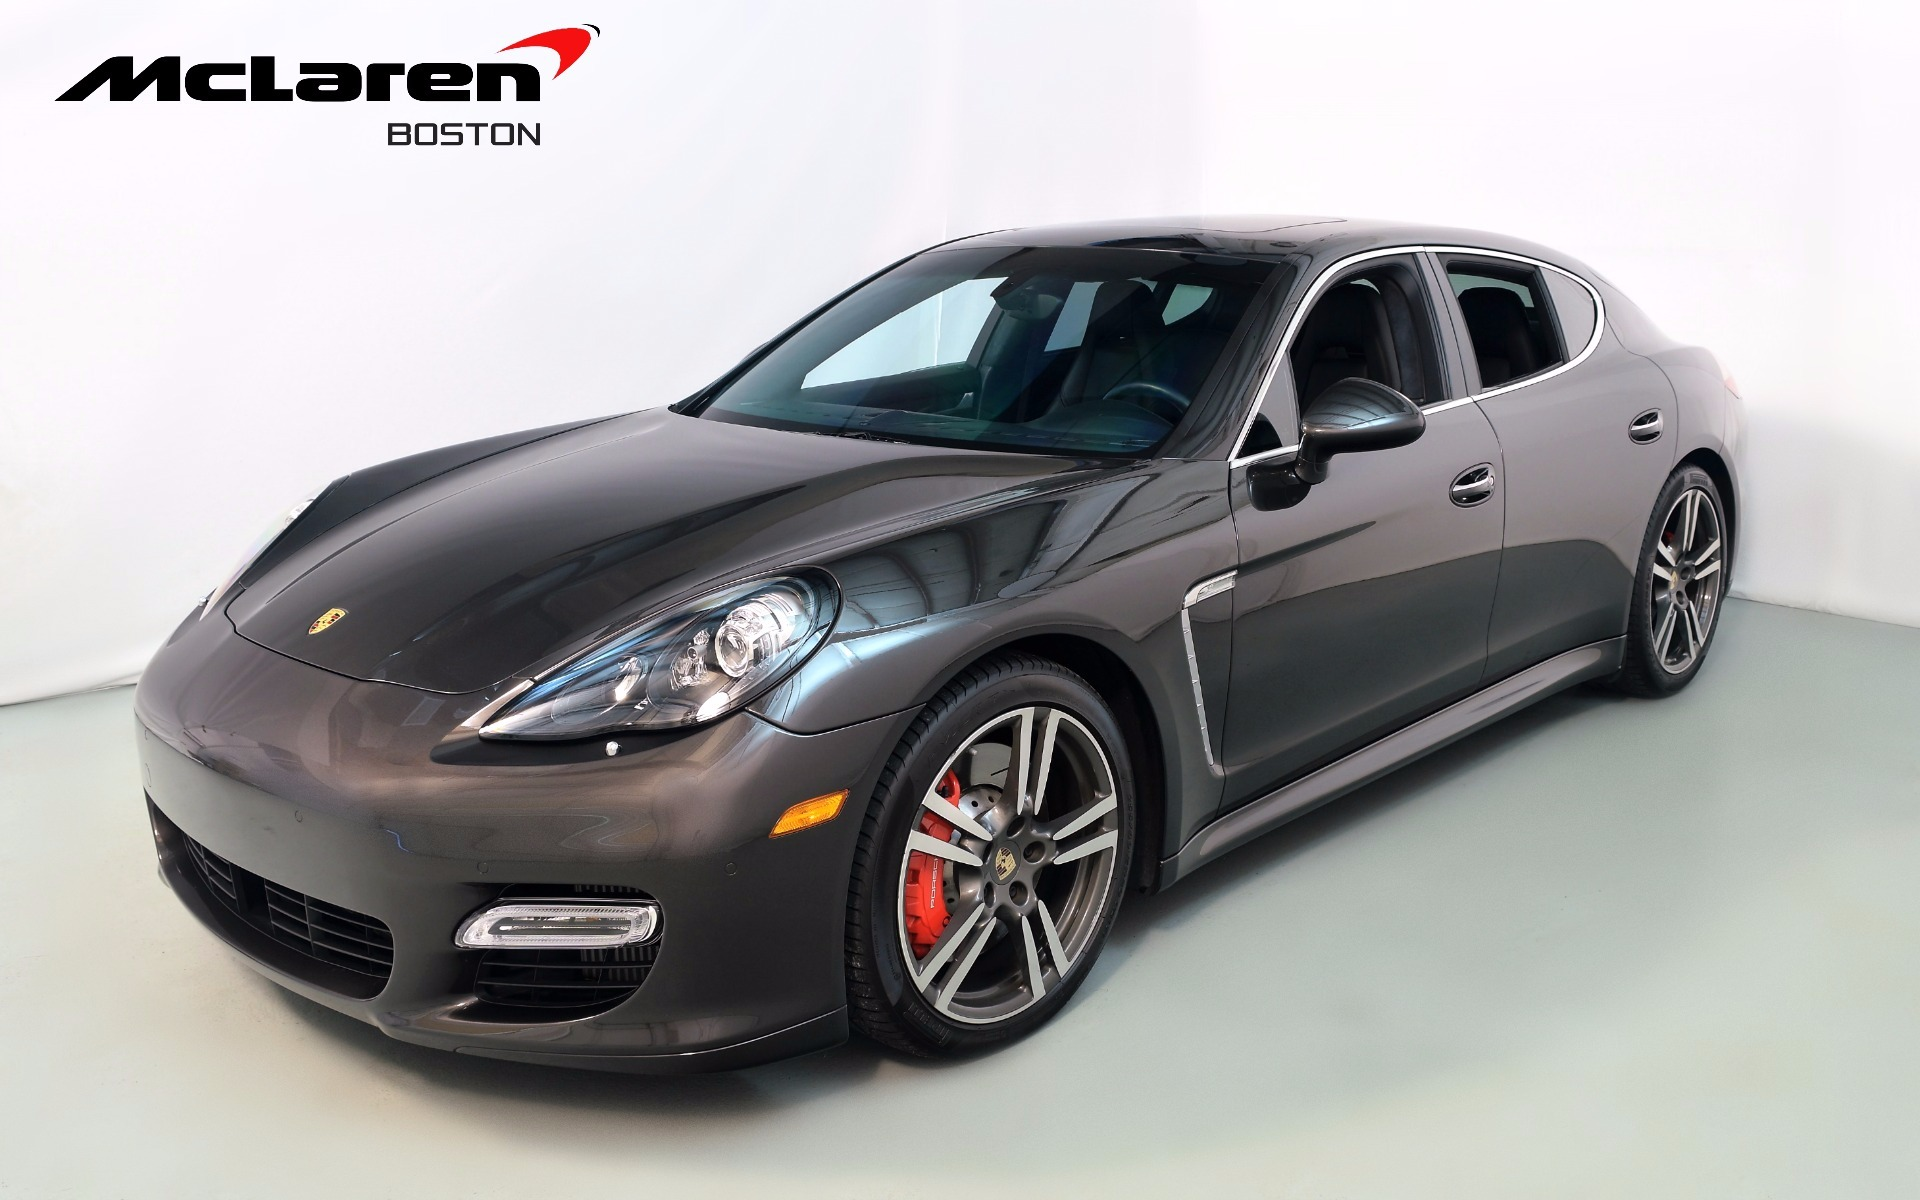 2012 porsche panamera turbo s for sale in norwell ma. Black Bedroom Furniture Sets. Home Design Ideas